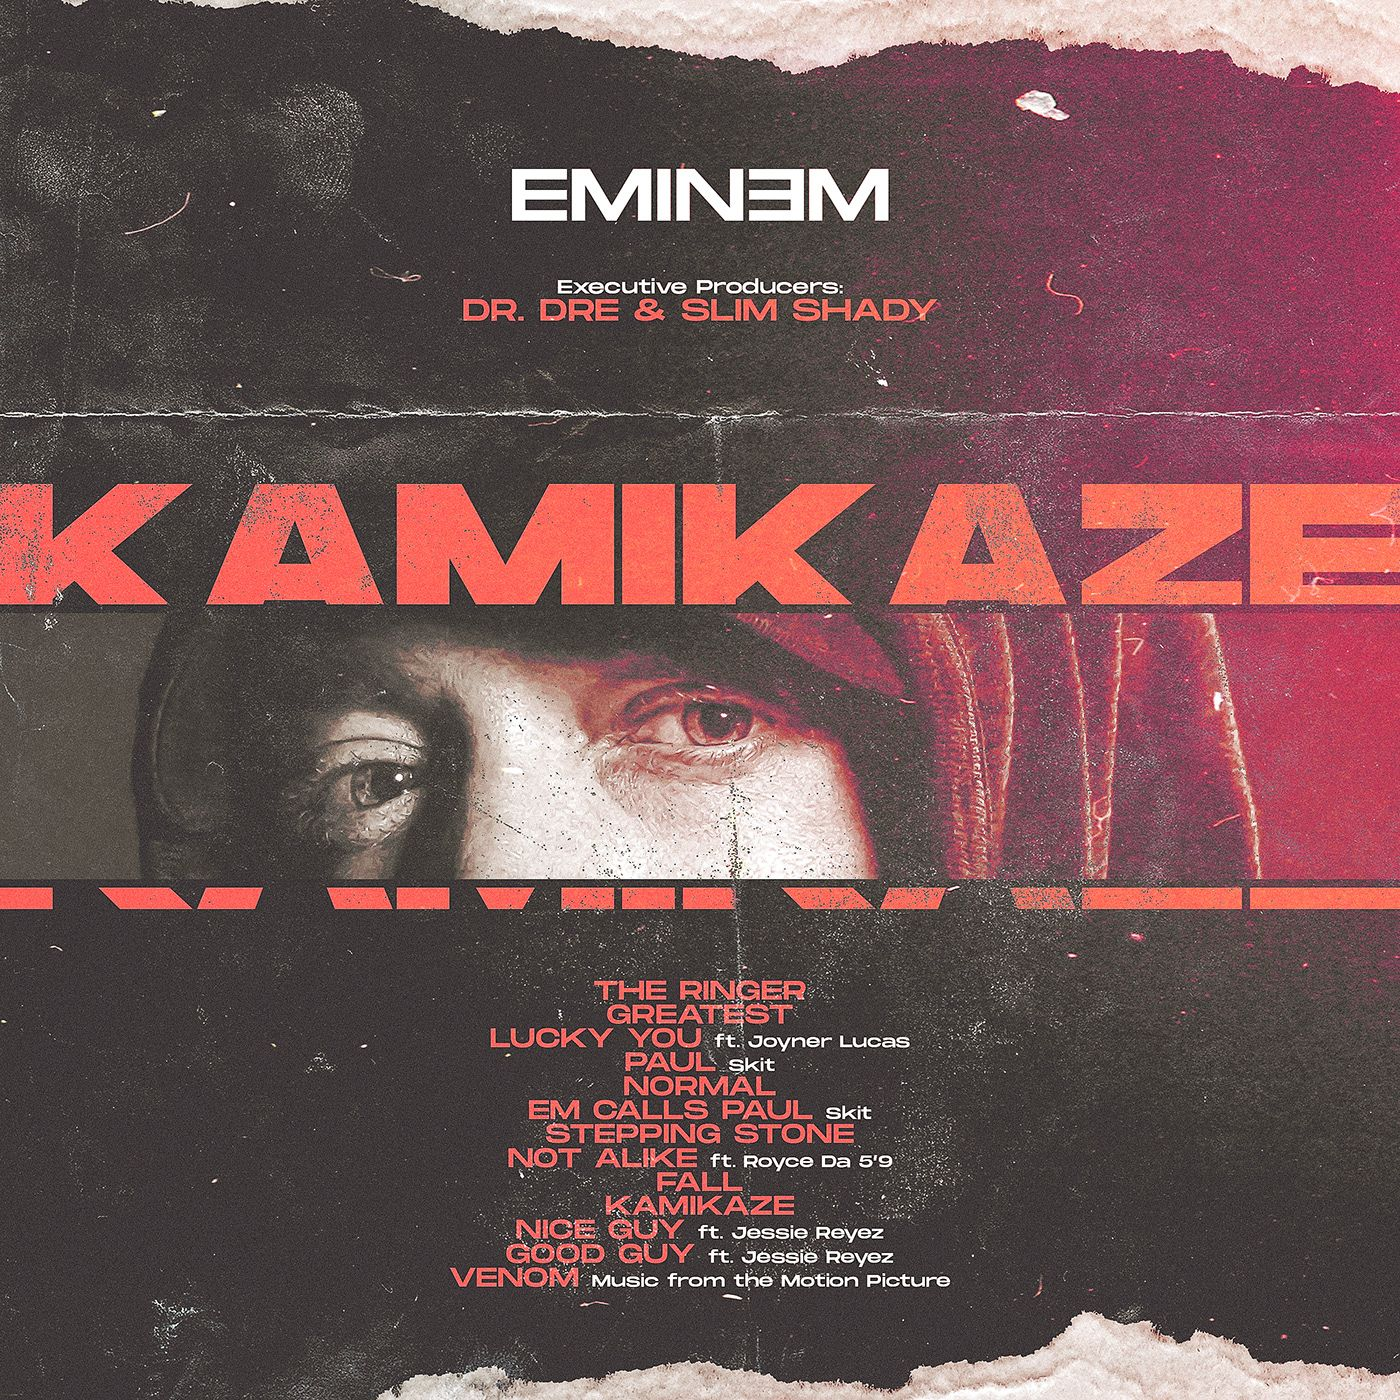 Eminem | Kamikaze | Album Art on Behance | 150 in 2019